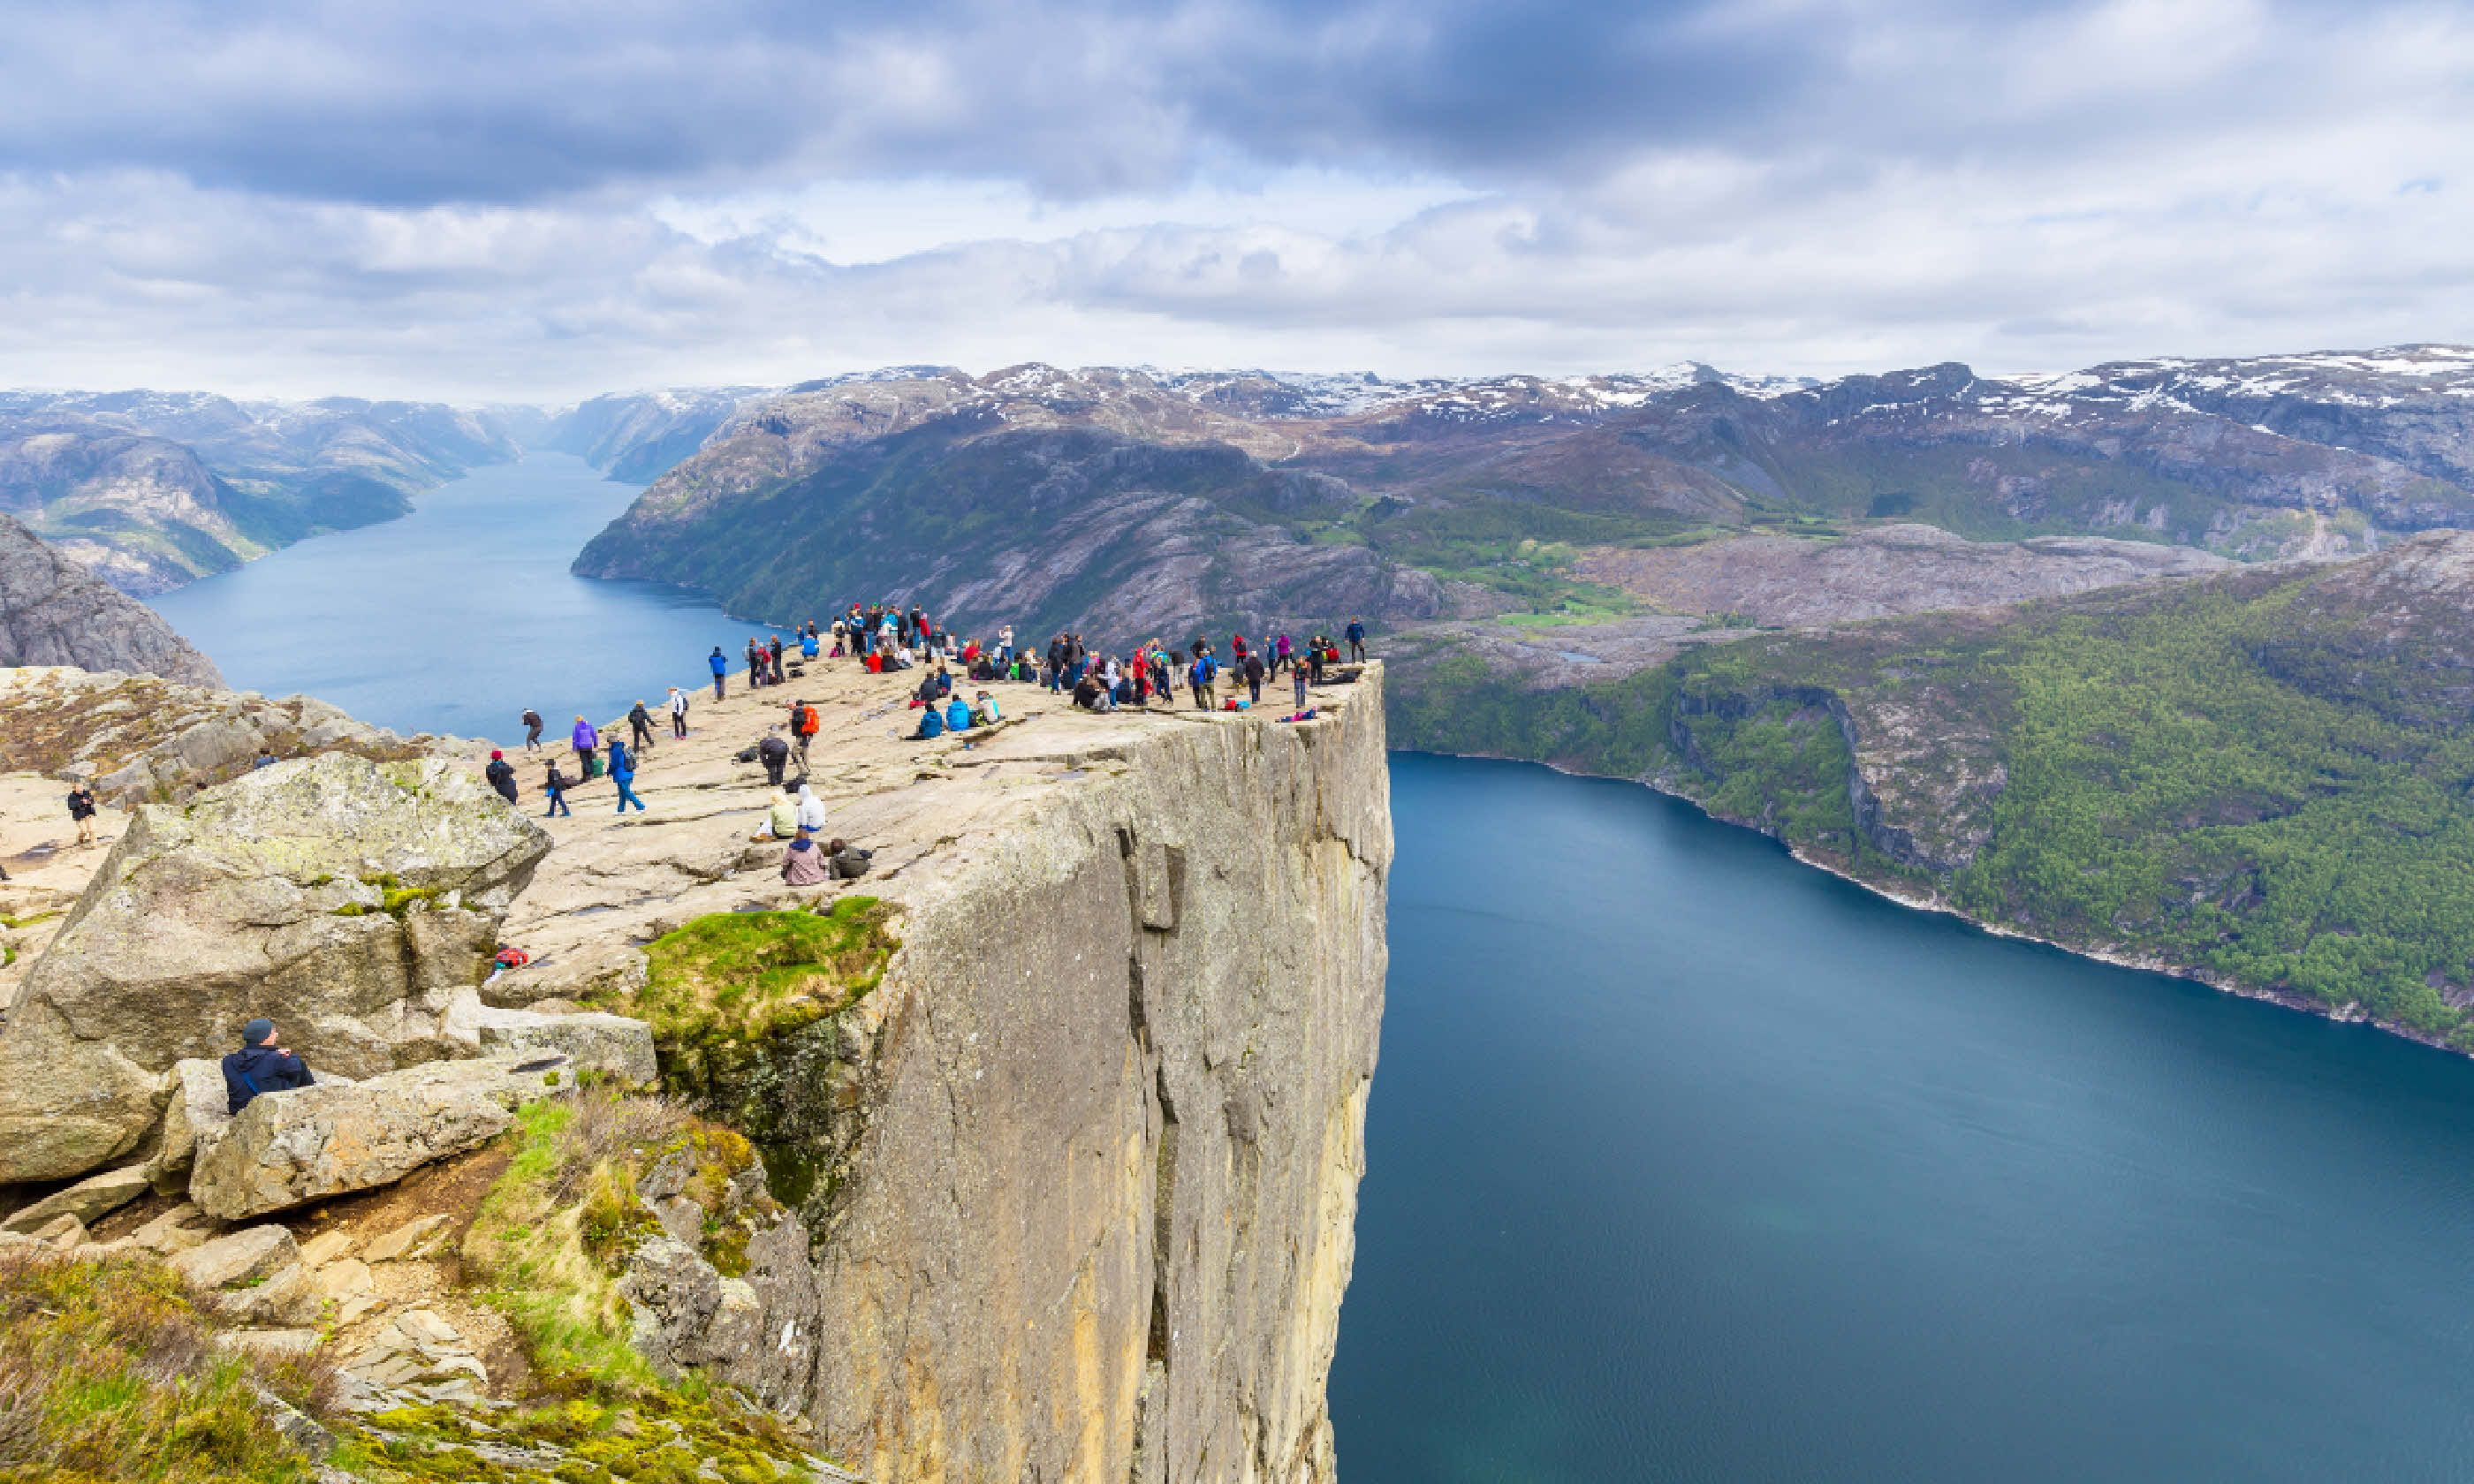 Pulpit Rock (Shutterstock)